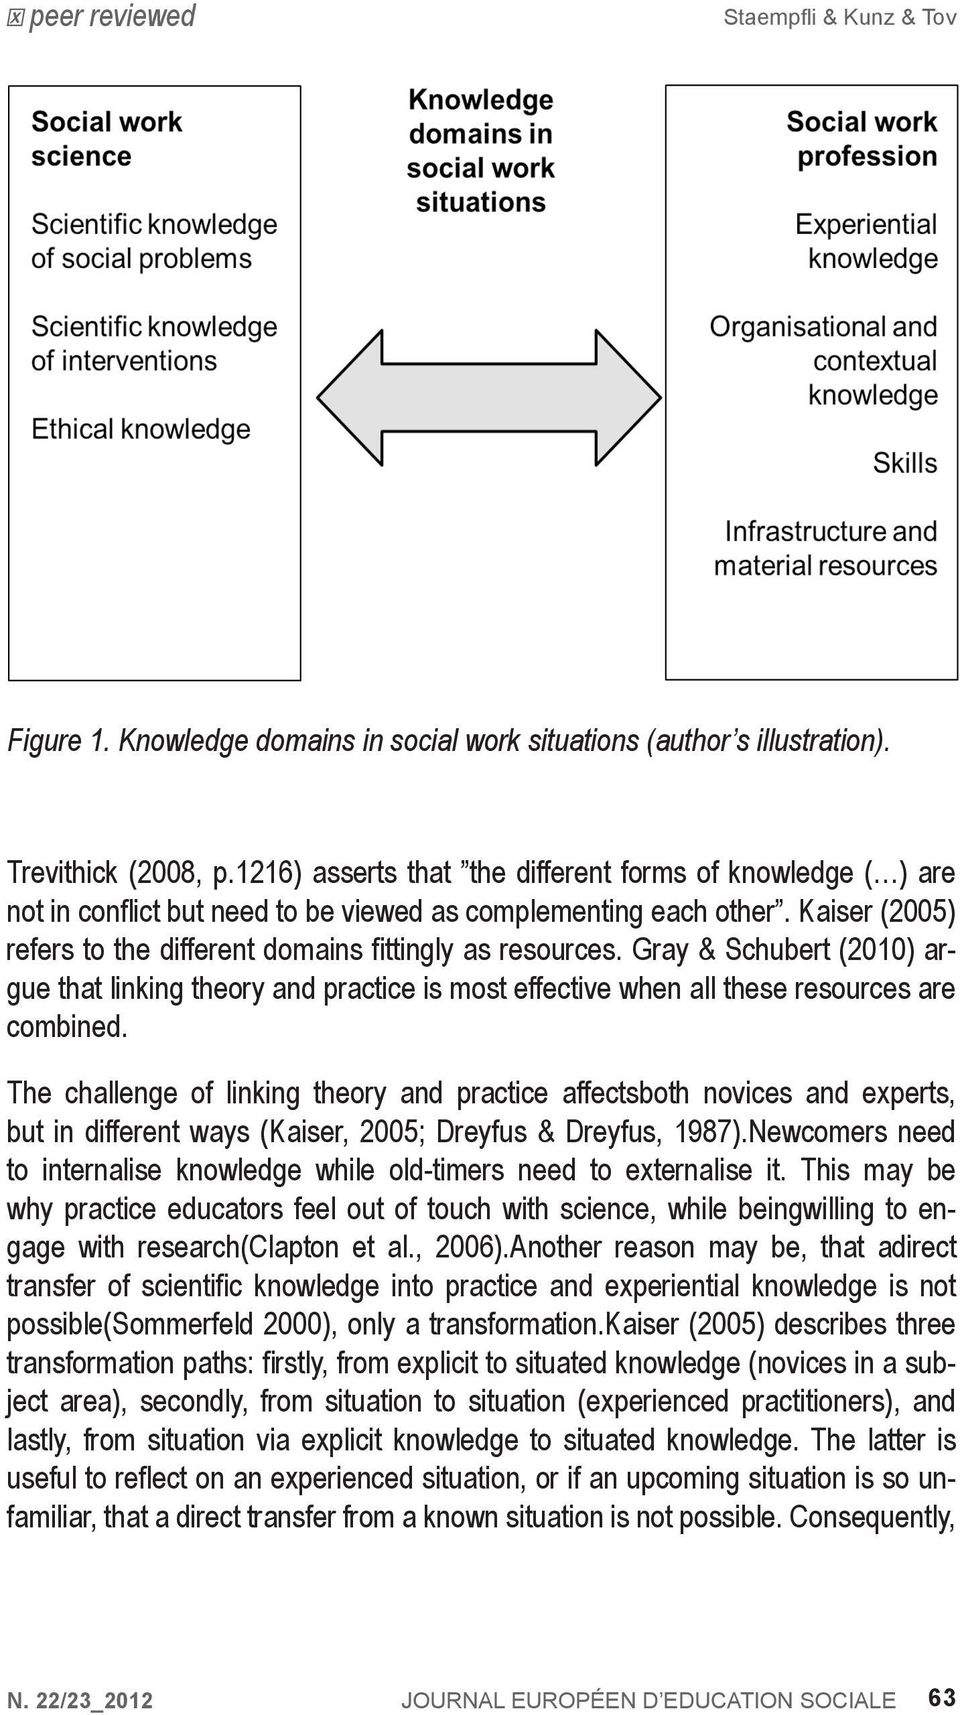 Knowledge domains in social work situations (author s illustration). Figure 1 Knowledge domains in social work situations (author s illustration) Trevithick (2008, p.